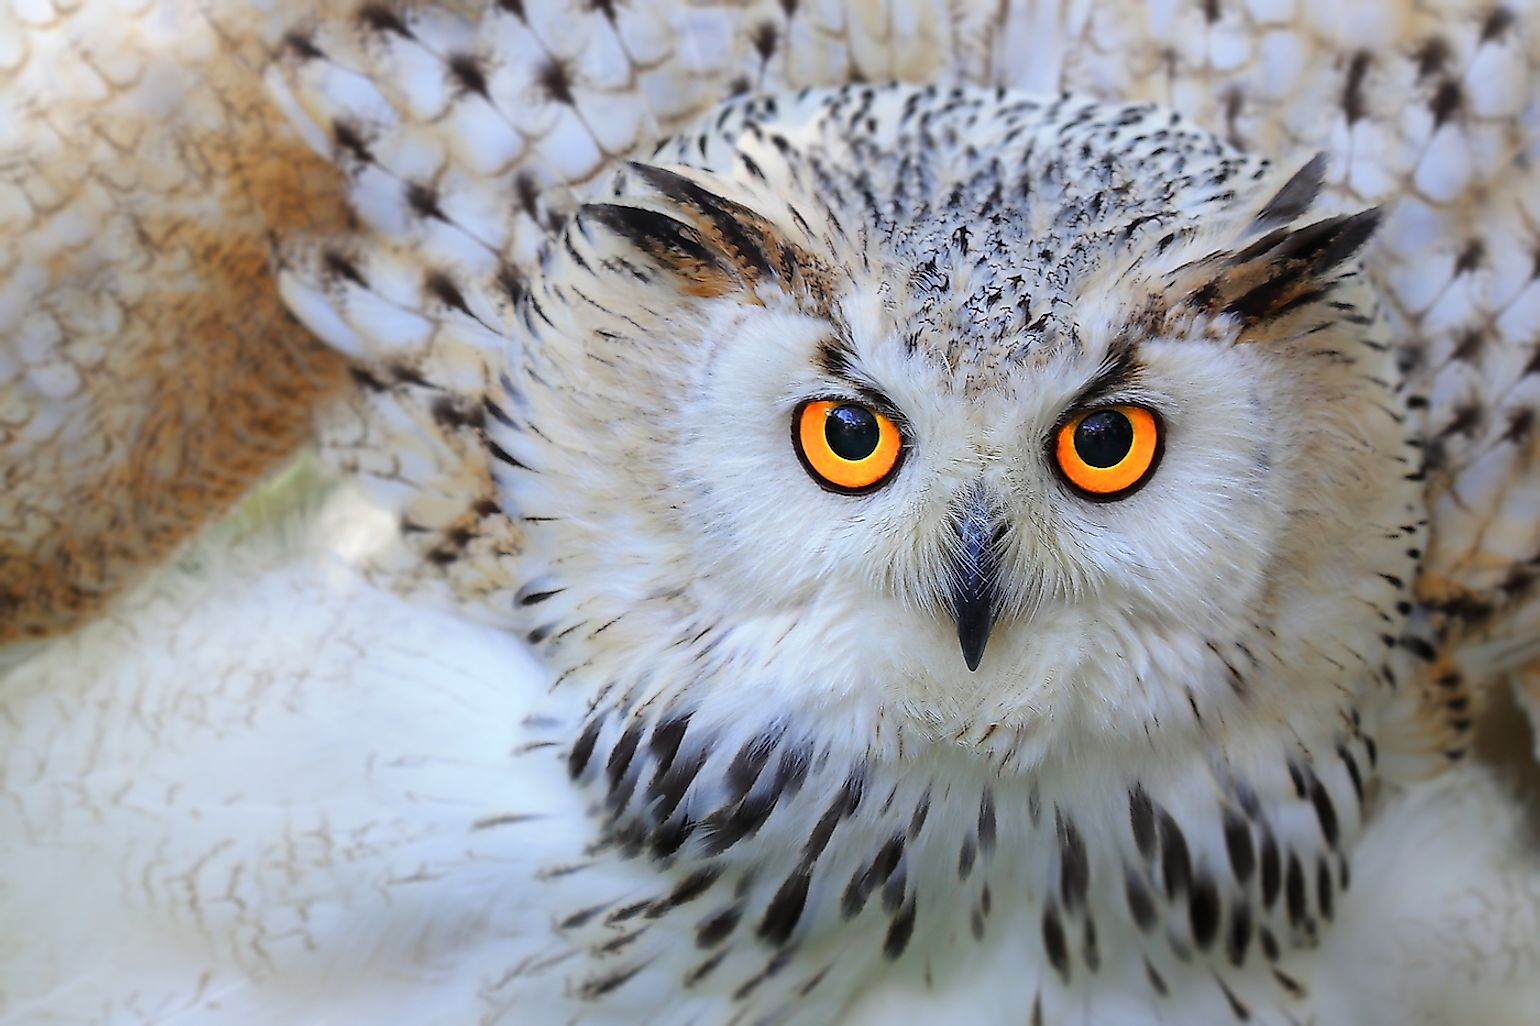 A Snowy owl. Image credit:  Skynavin/Shutterstock.com